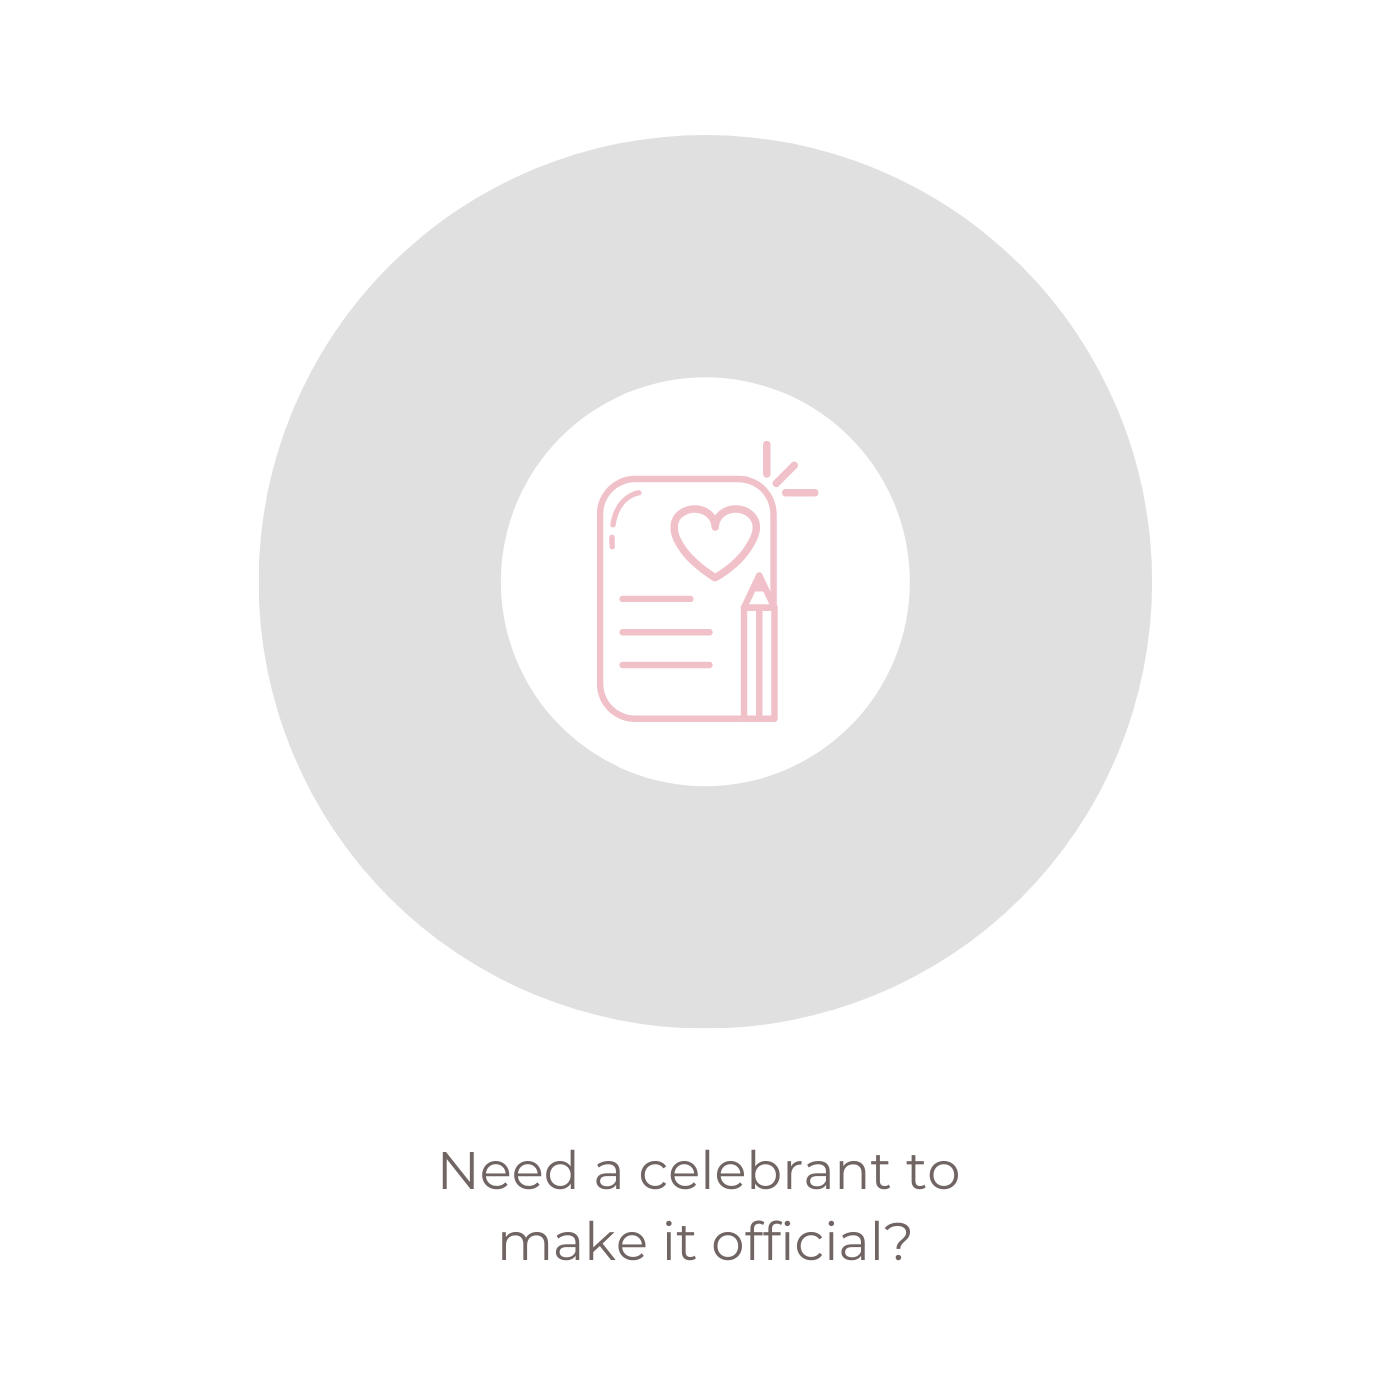 Need a celebrant to make it official?